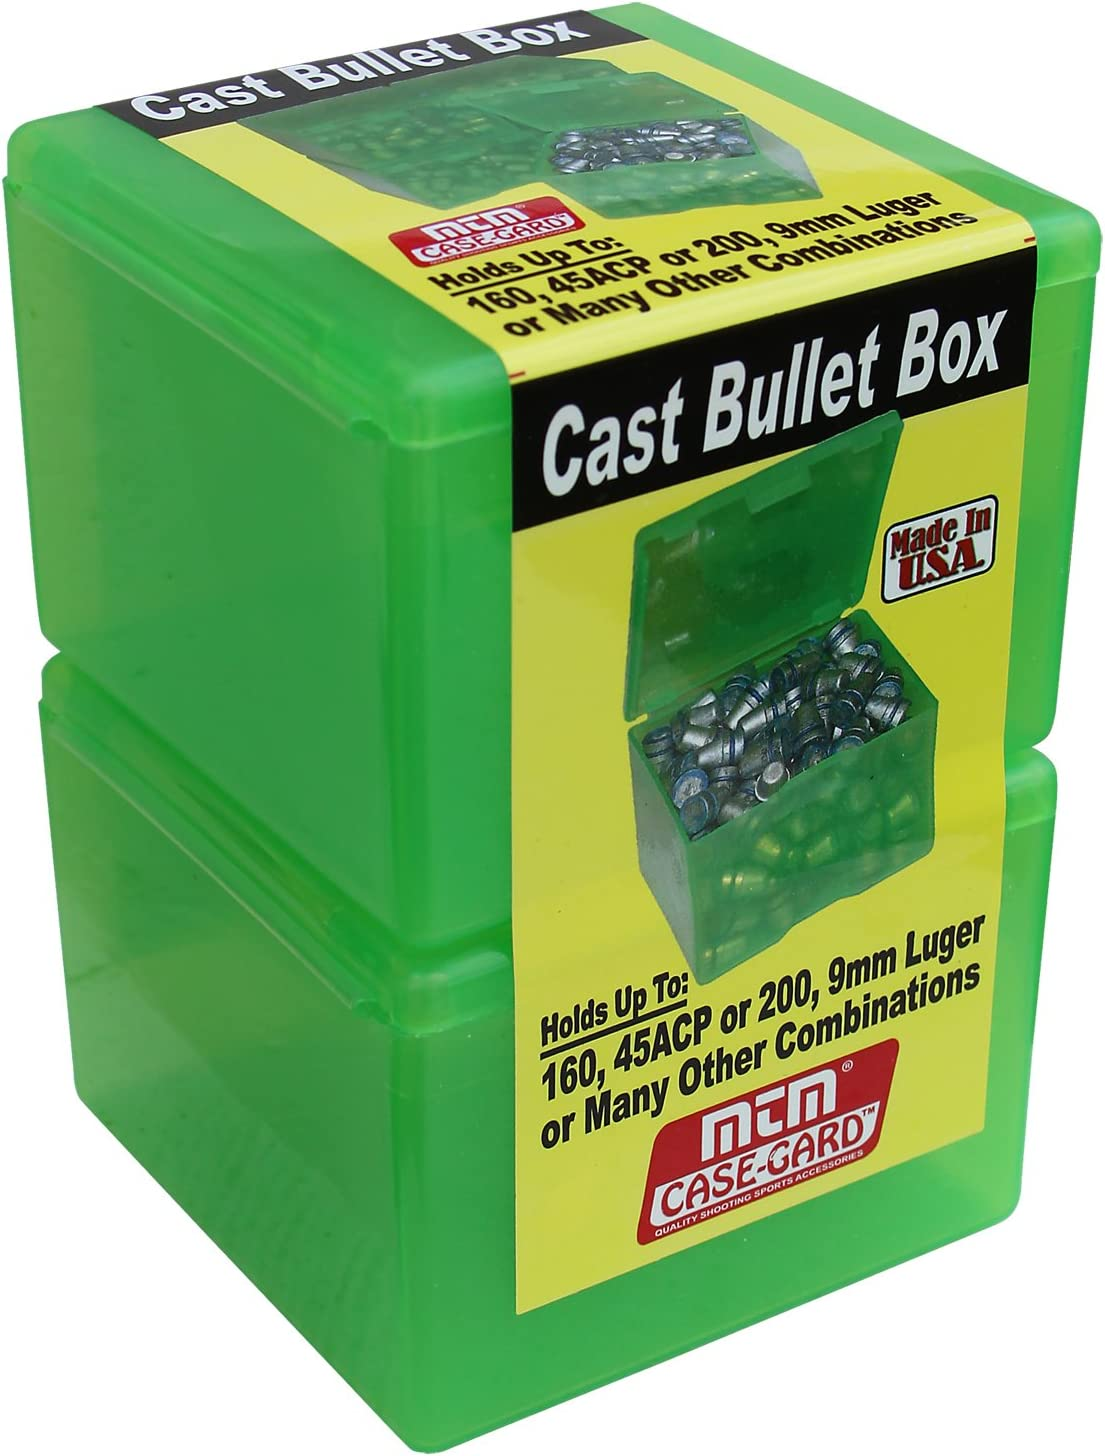 Clear Green MTM Cast Bullet Box Cast Bullet Box Made From See-Thru